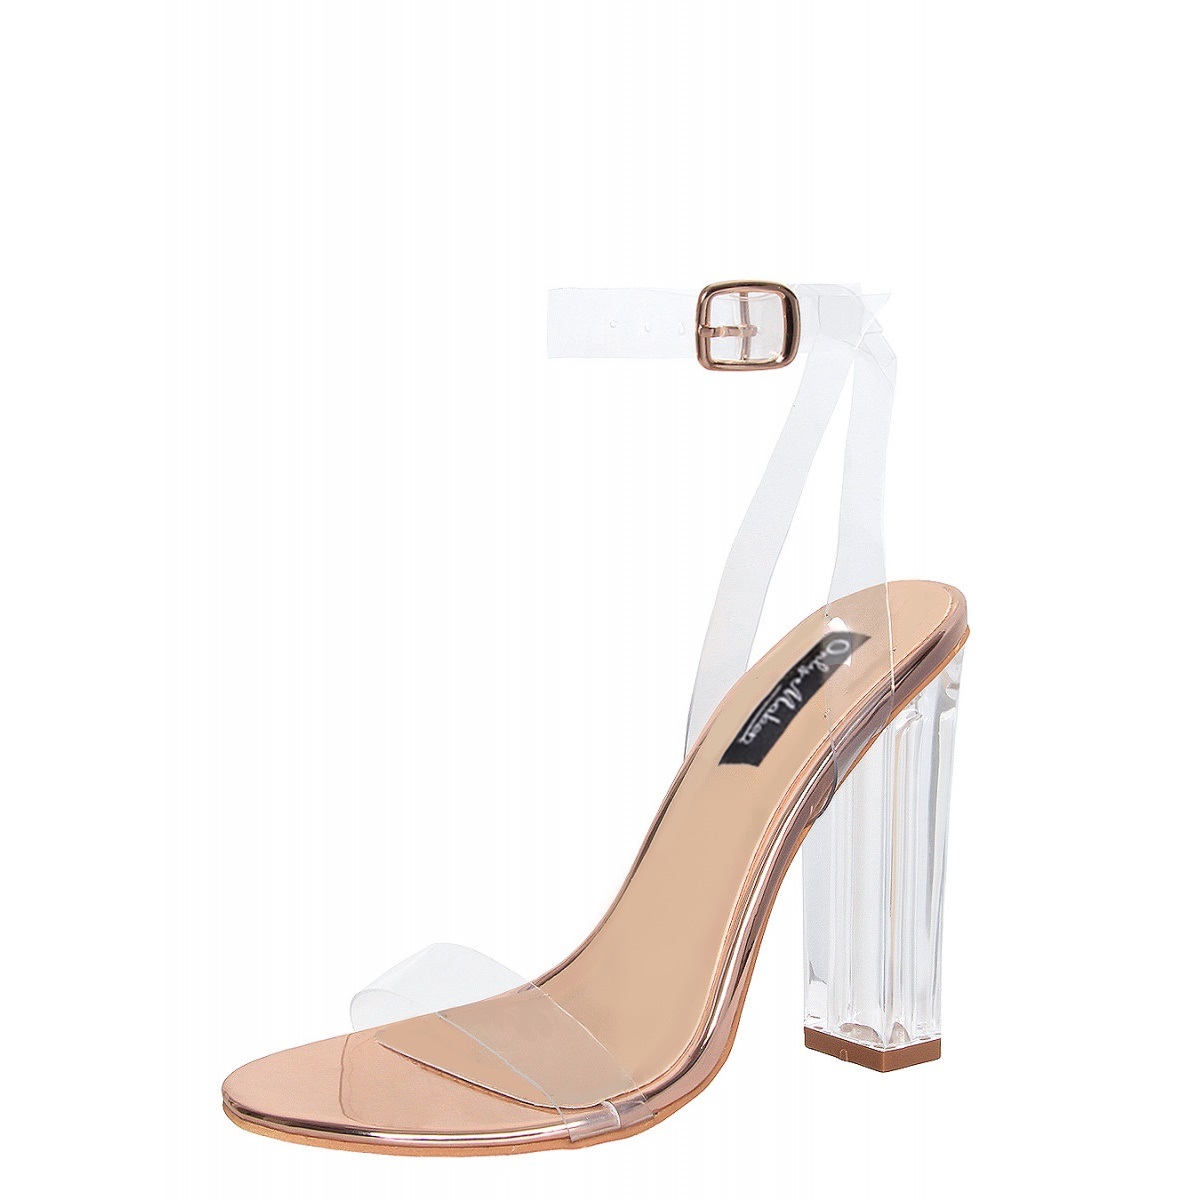 a957e3062727 Product Description. Onlymaker Womens Lucite Clear Buckle Ankle Strap Block  Perspex High Heel Sandals